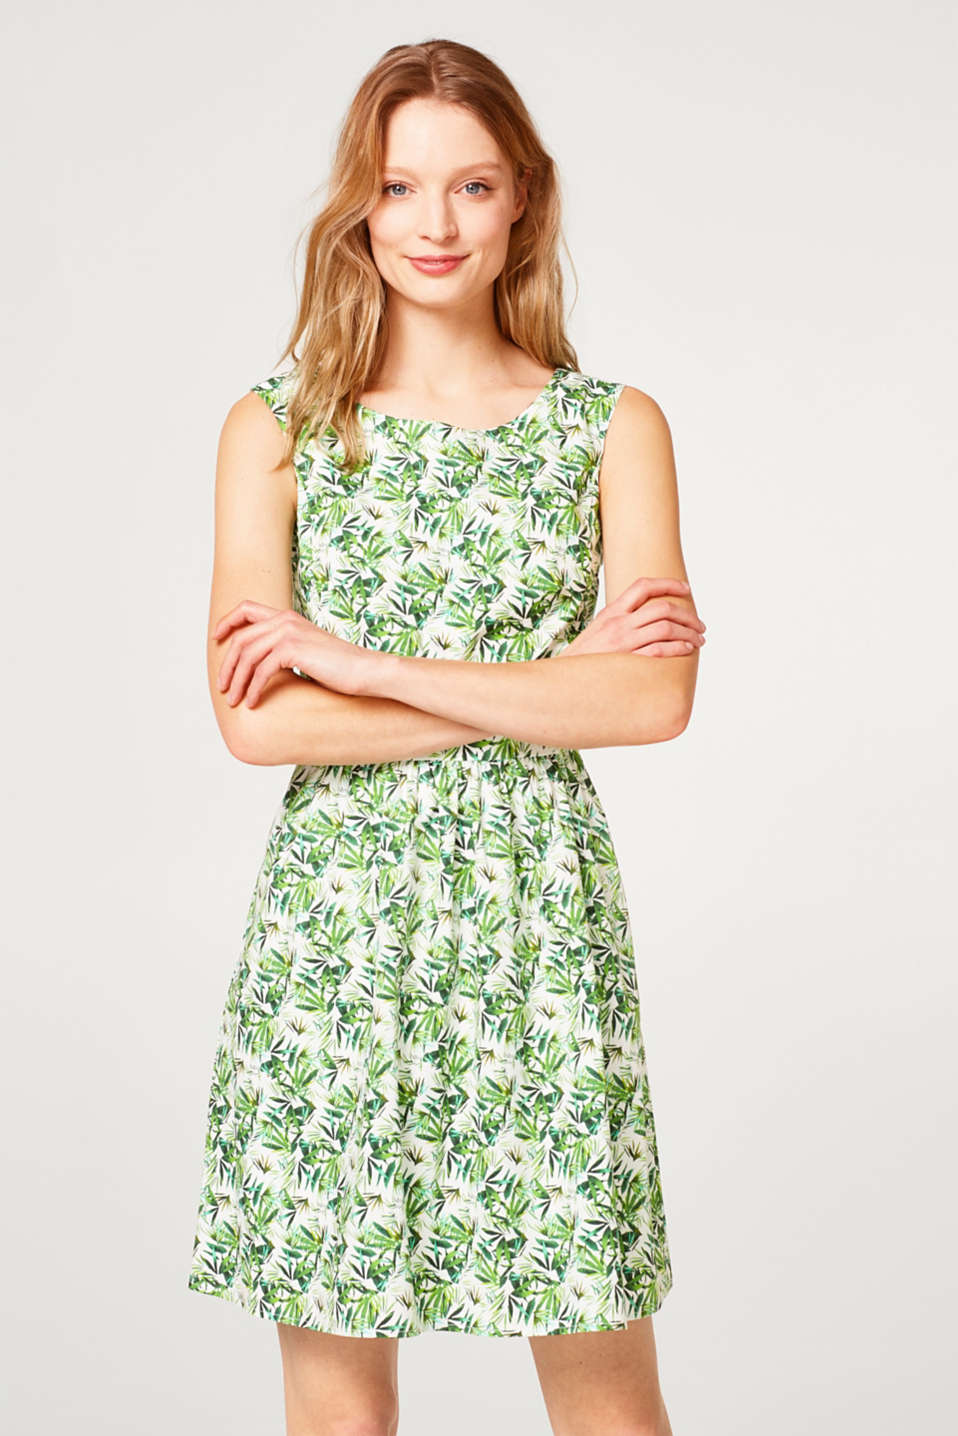 Esprit - Smooth printed dress with cut-outs, 100% cotton